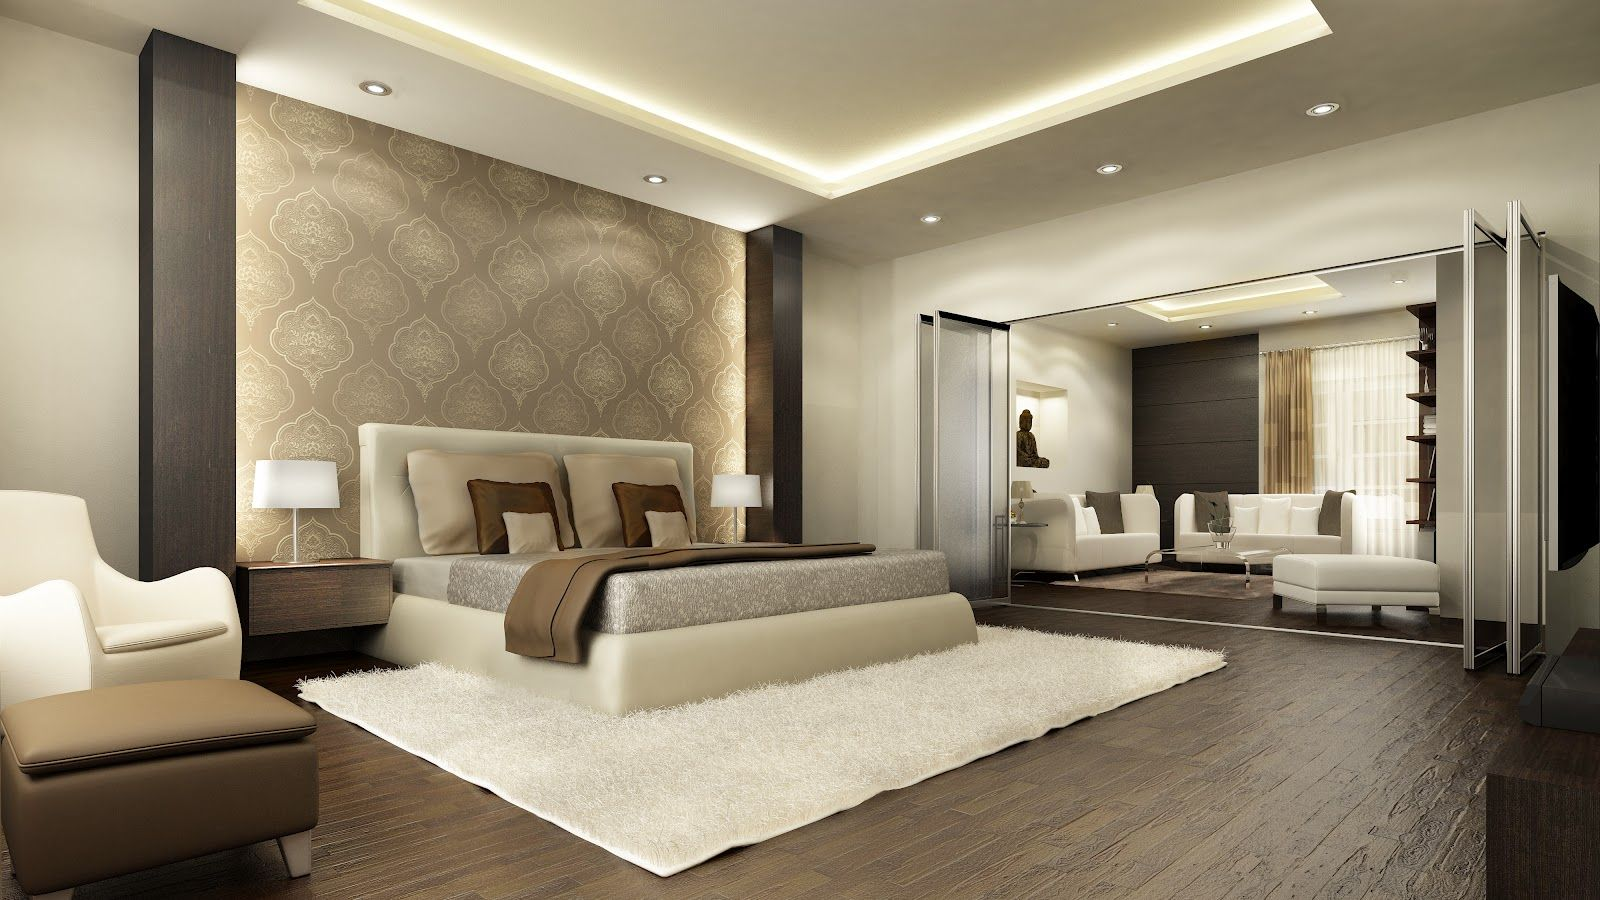 11 awesome master bedroom design ideas - | master bedroom and bedrooms